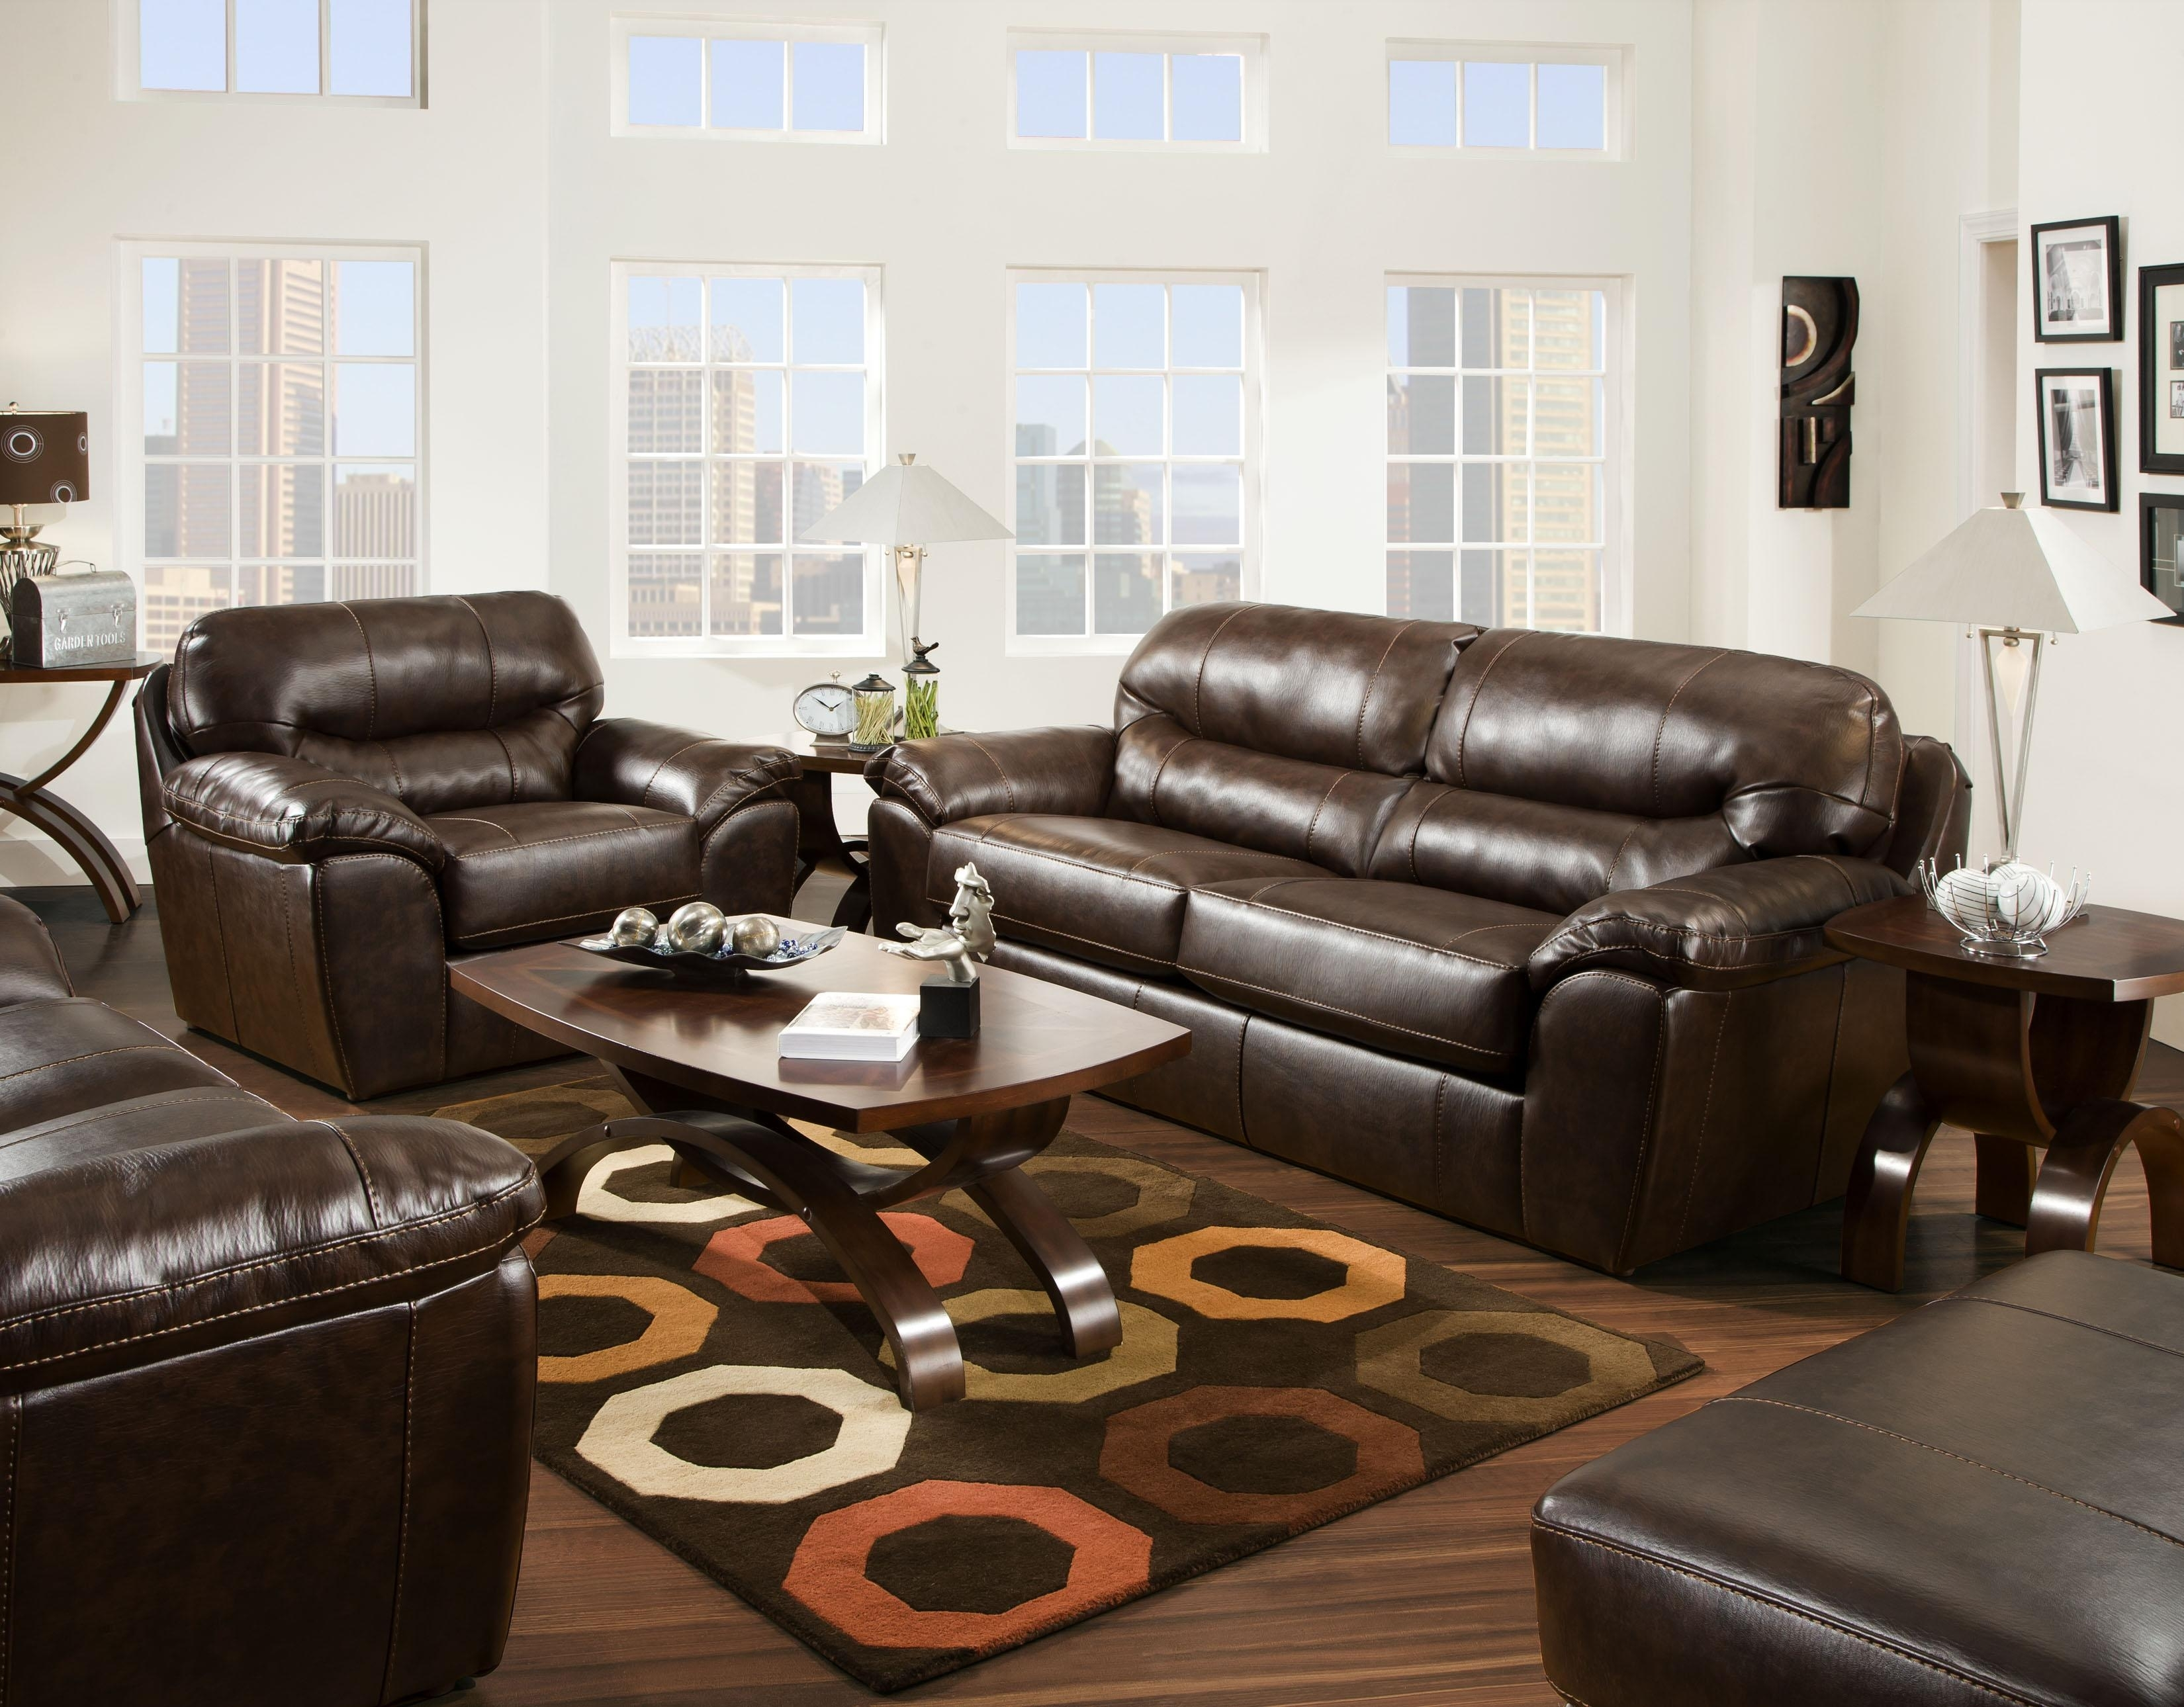 Furniture : Claudia Ii Leather Sofa And Loveseat Macys Leather Sofa inside Sectional Sofas at Barrie (Image 9 of 15)